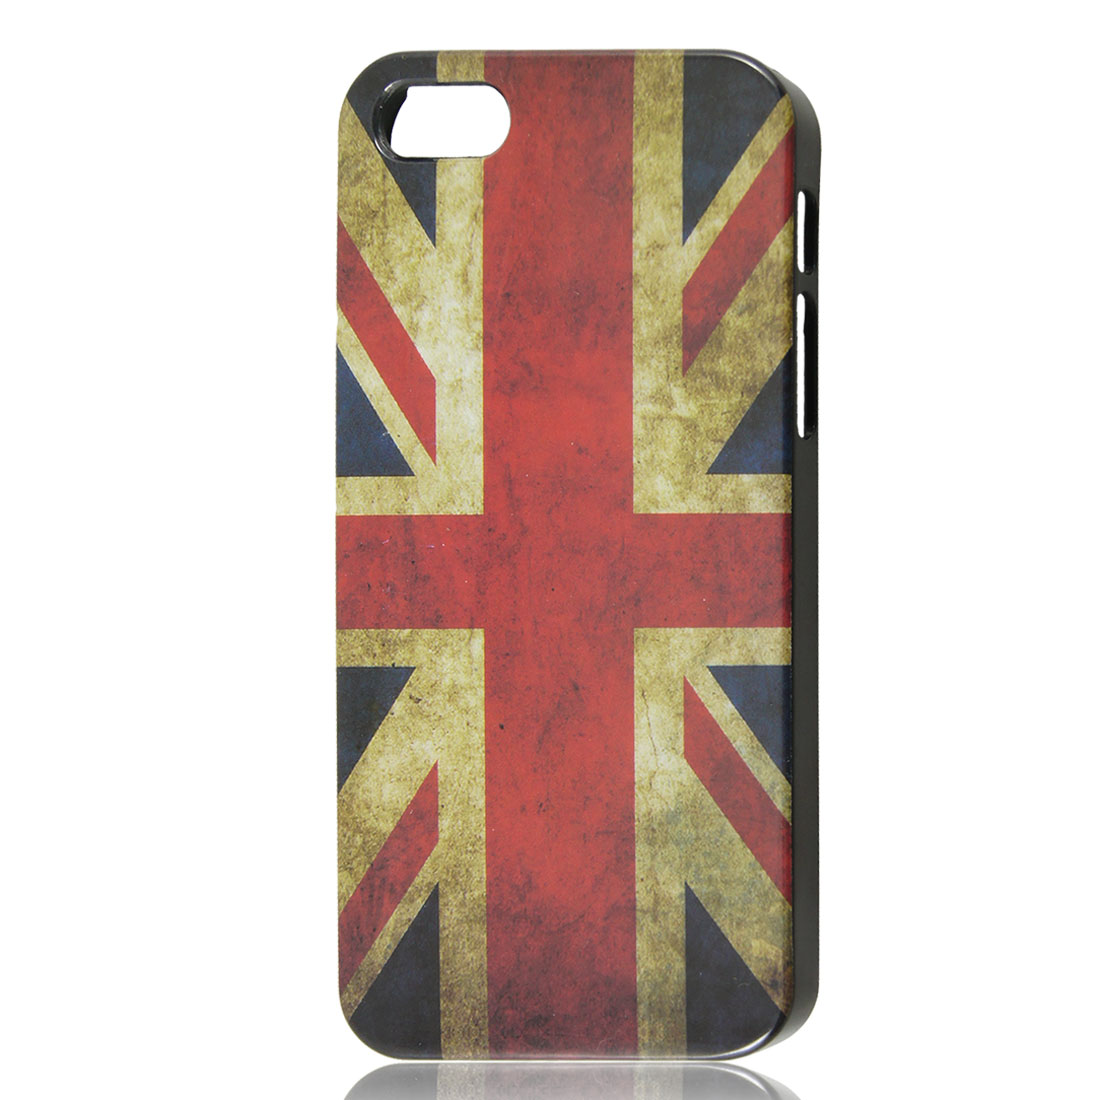 Vintage Style UK United States Flag Pattern Hard Back Case Cover for iPhone 5 5G